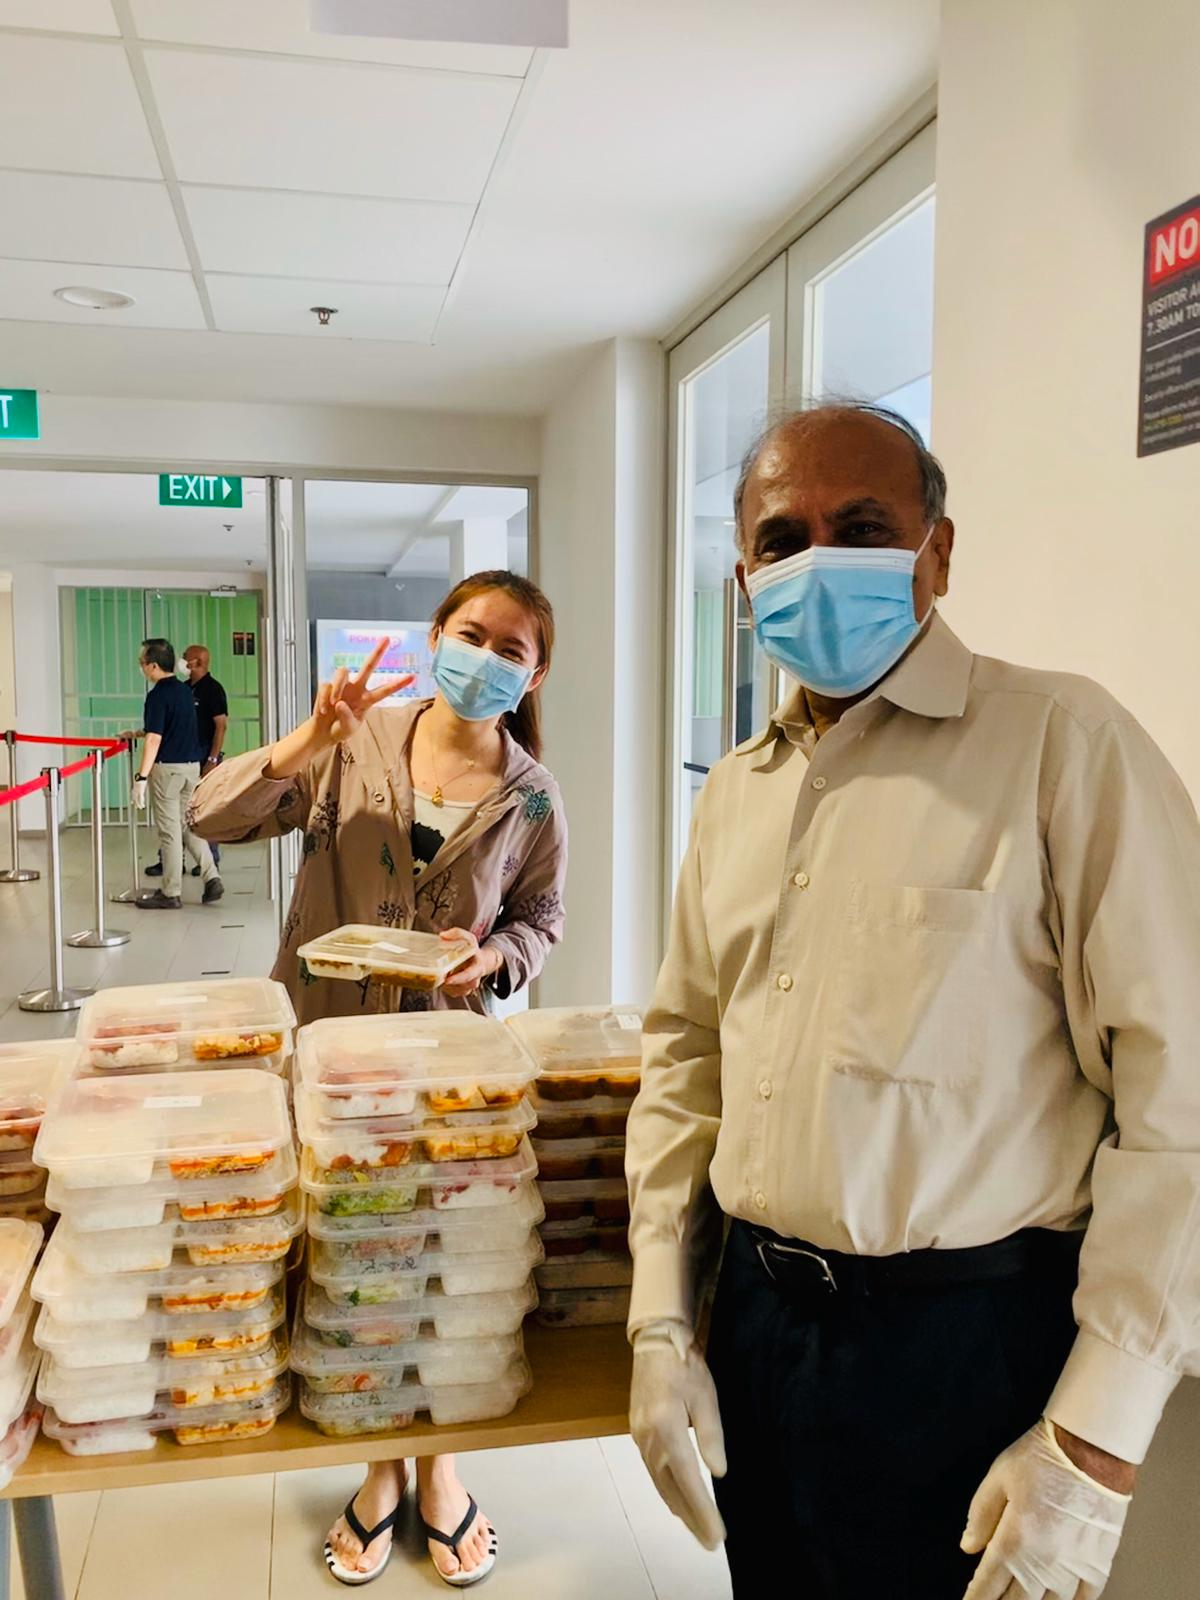 Prof Subra Suresh, NTU president, giving out food packs to students residing on campus during Singapore's circuit breaker period from April to June 2020. Photo courtesy: NTU